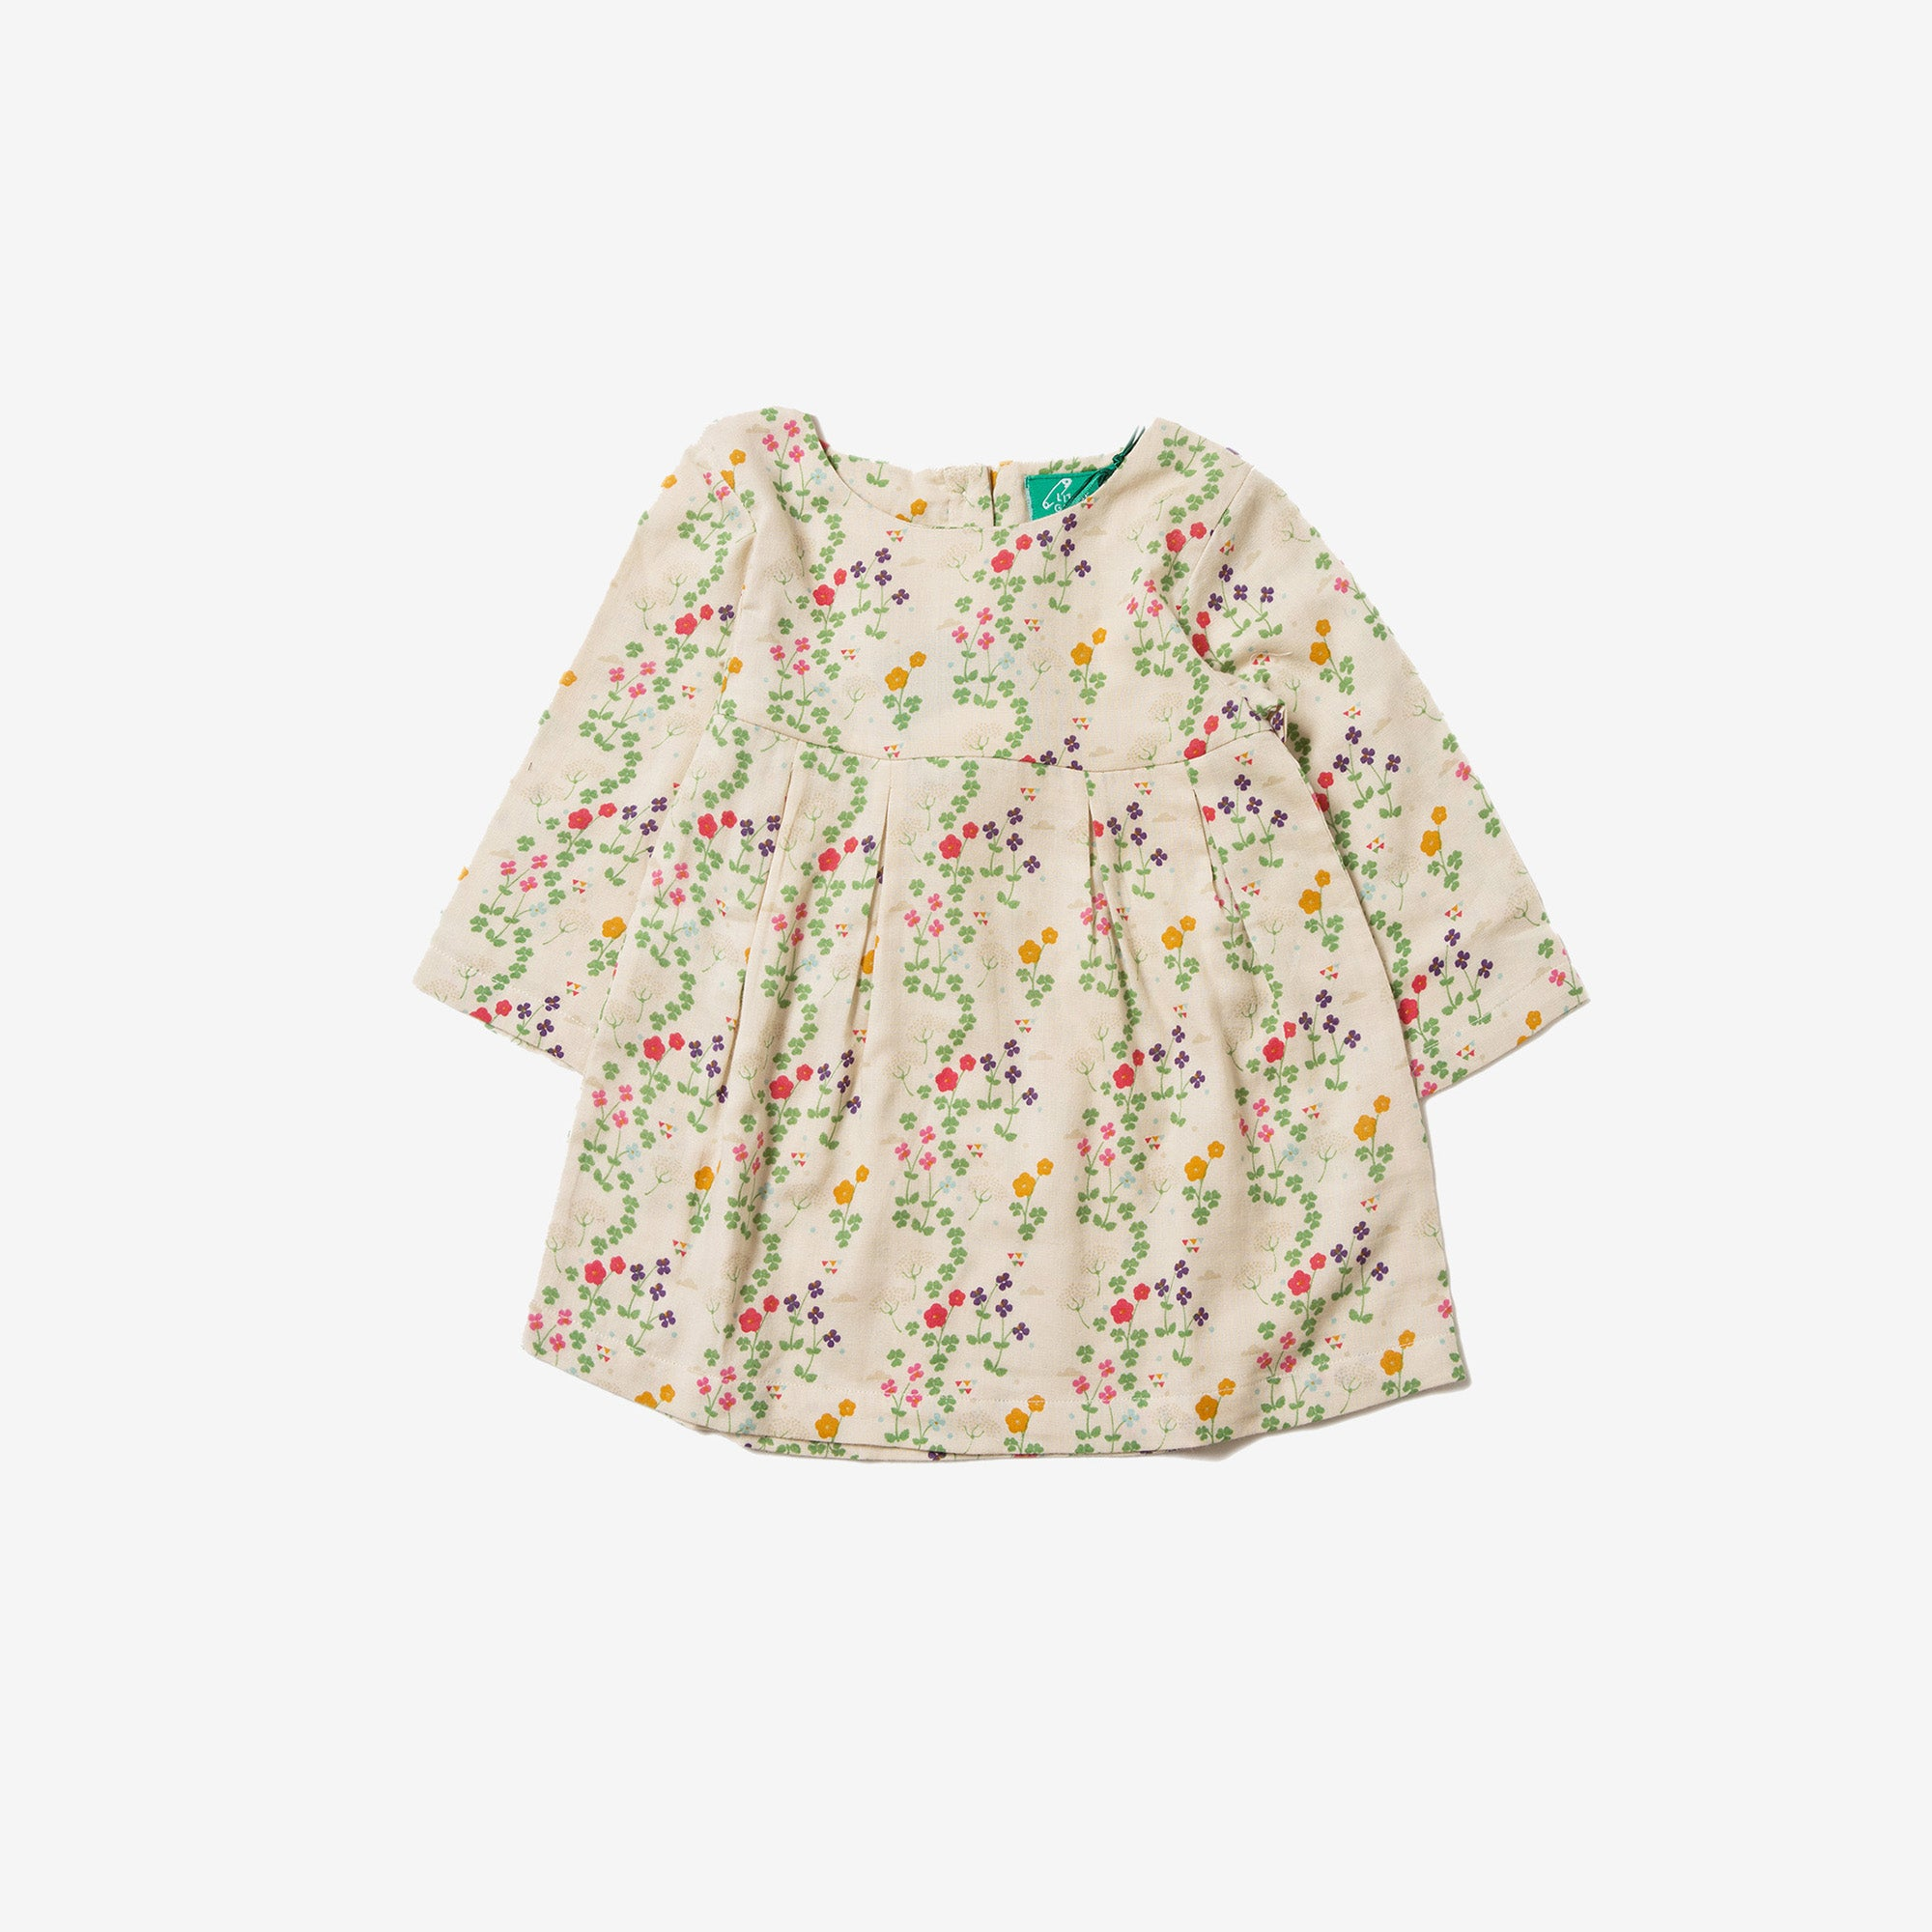 Organic Fairtrade Clothing For Babies Kids Little Green Radicals